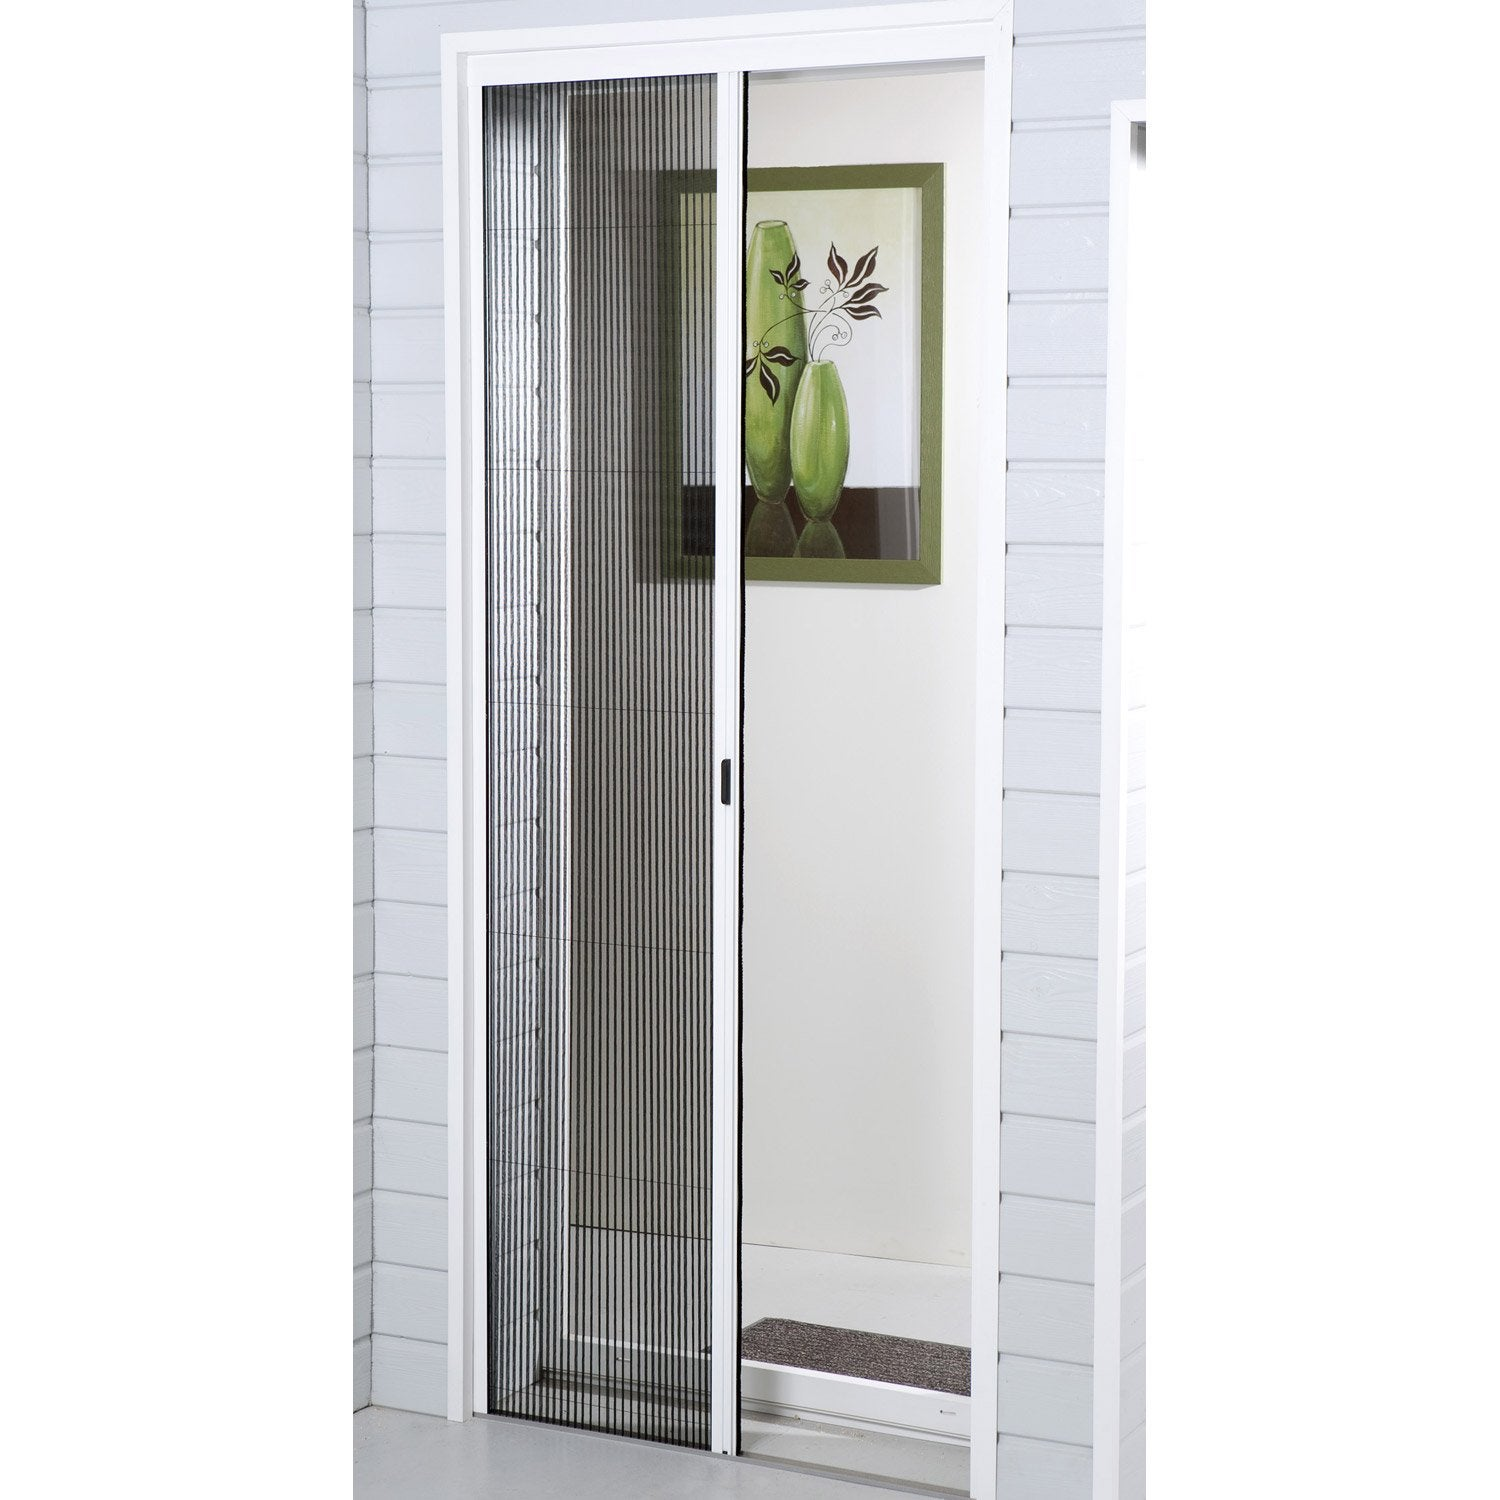 Moustiquaire porte fen tre pliss e moustikit 230x140 cm for Moustiquaire fenetre